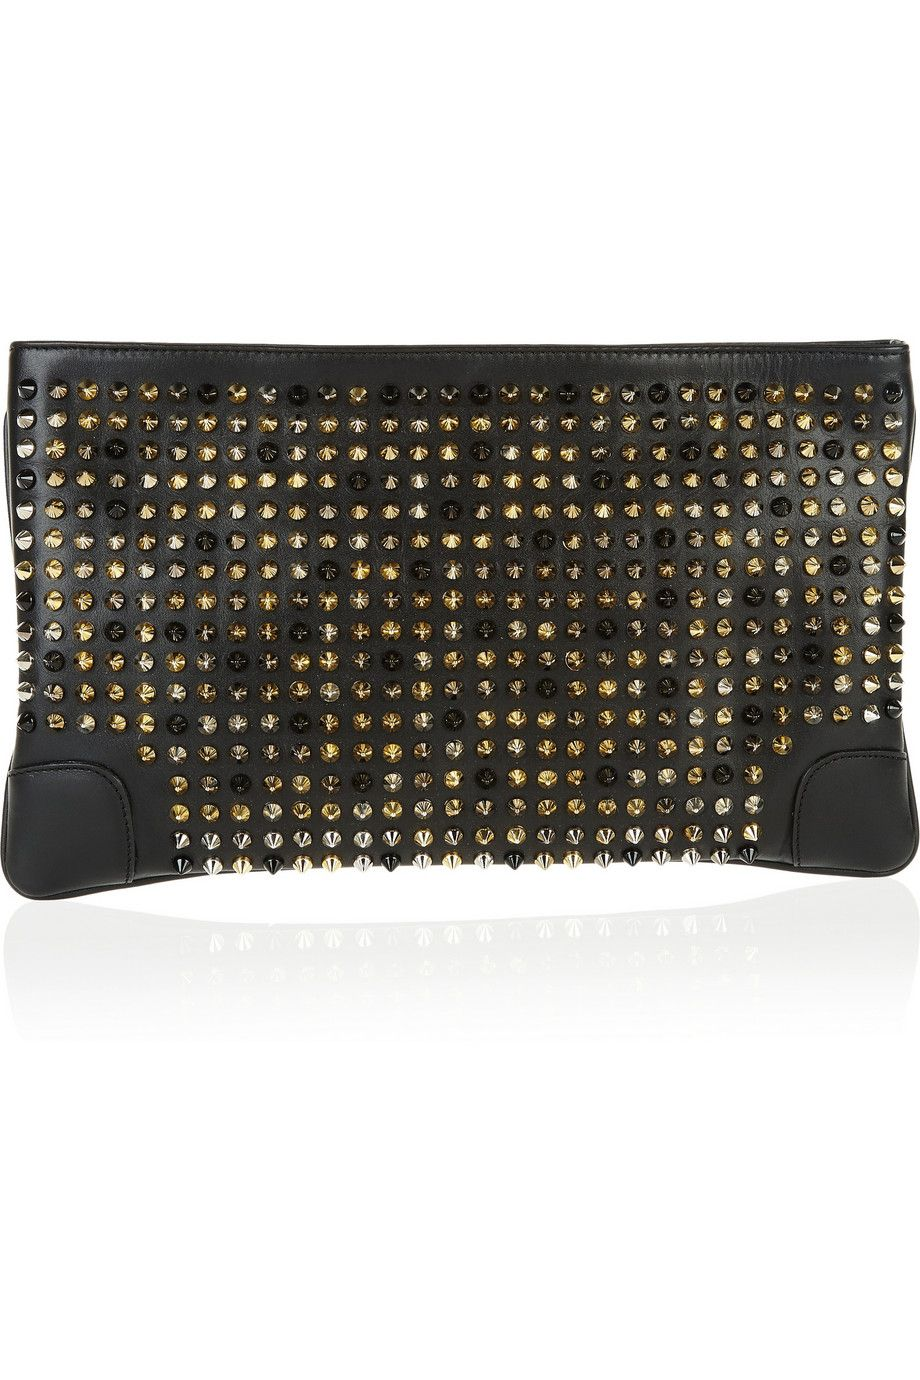 36e8579c35d Christian Louboutin | Loubiposh spiked leather clutch | clutses ...